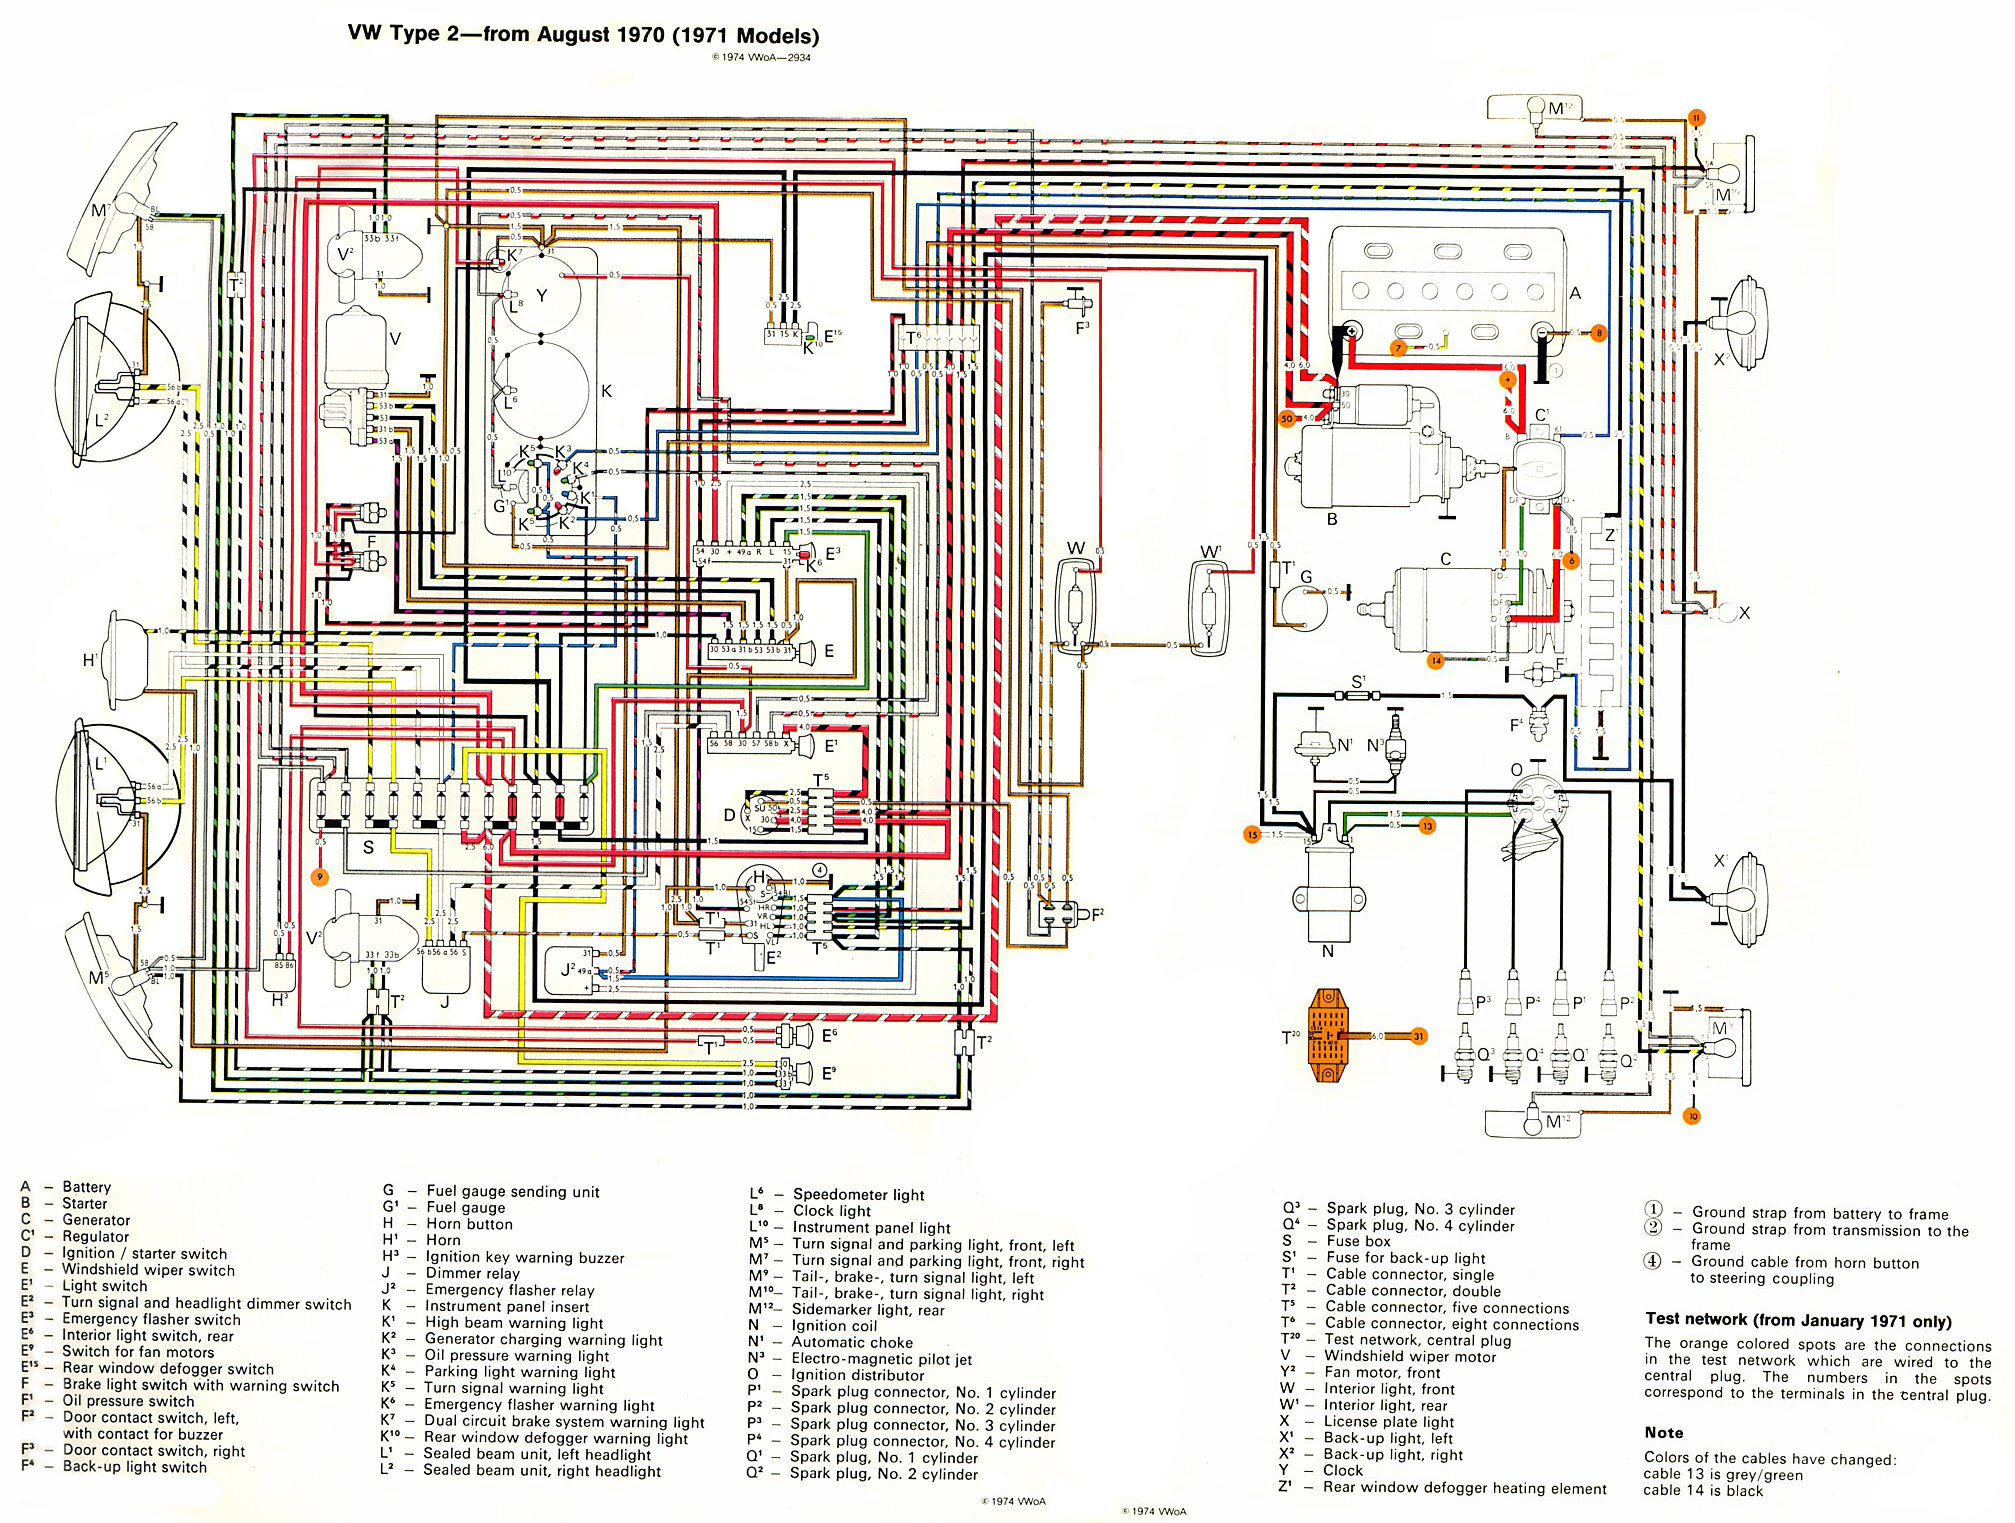 baybus_71_fixed wiring schematic diagram carrier package unit wiring diagram vw wiring diagram symbols at bakdesigns.co